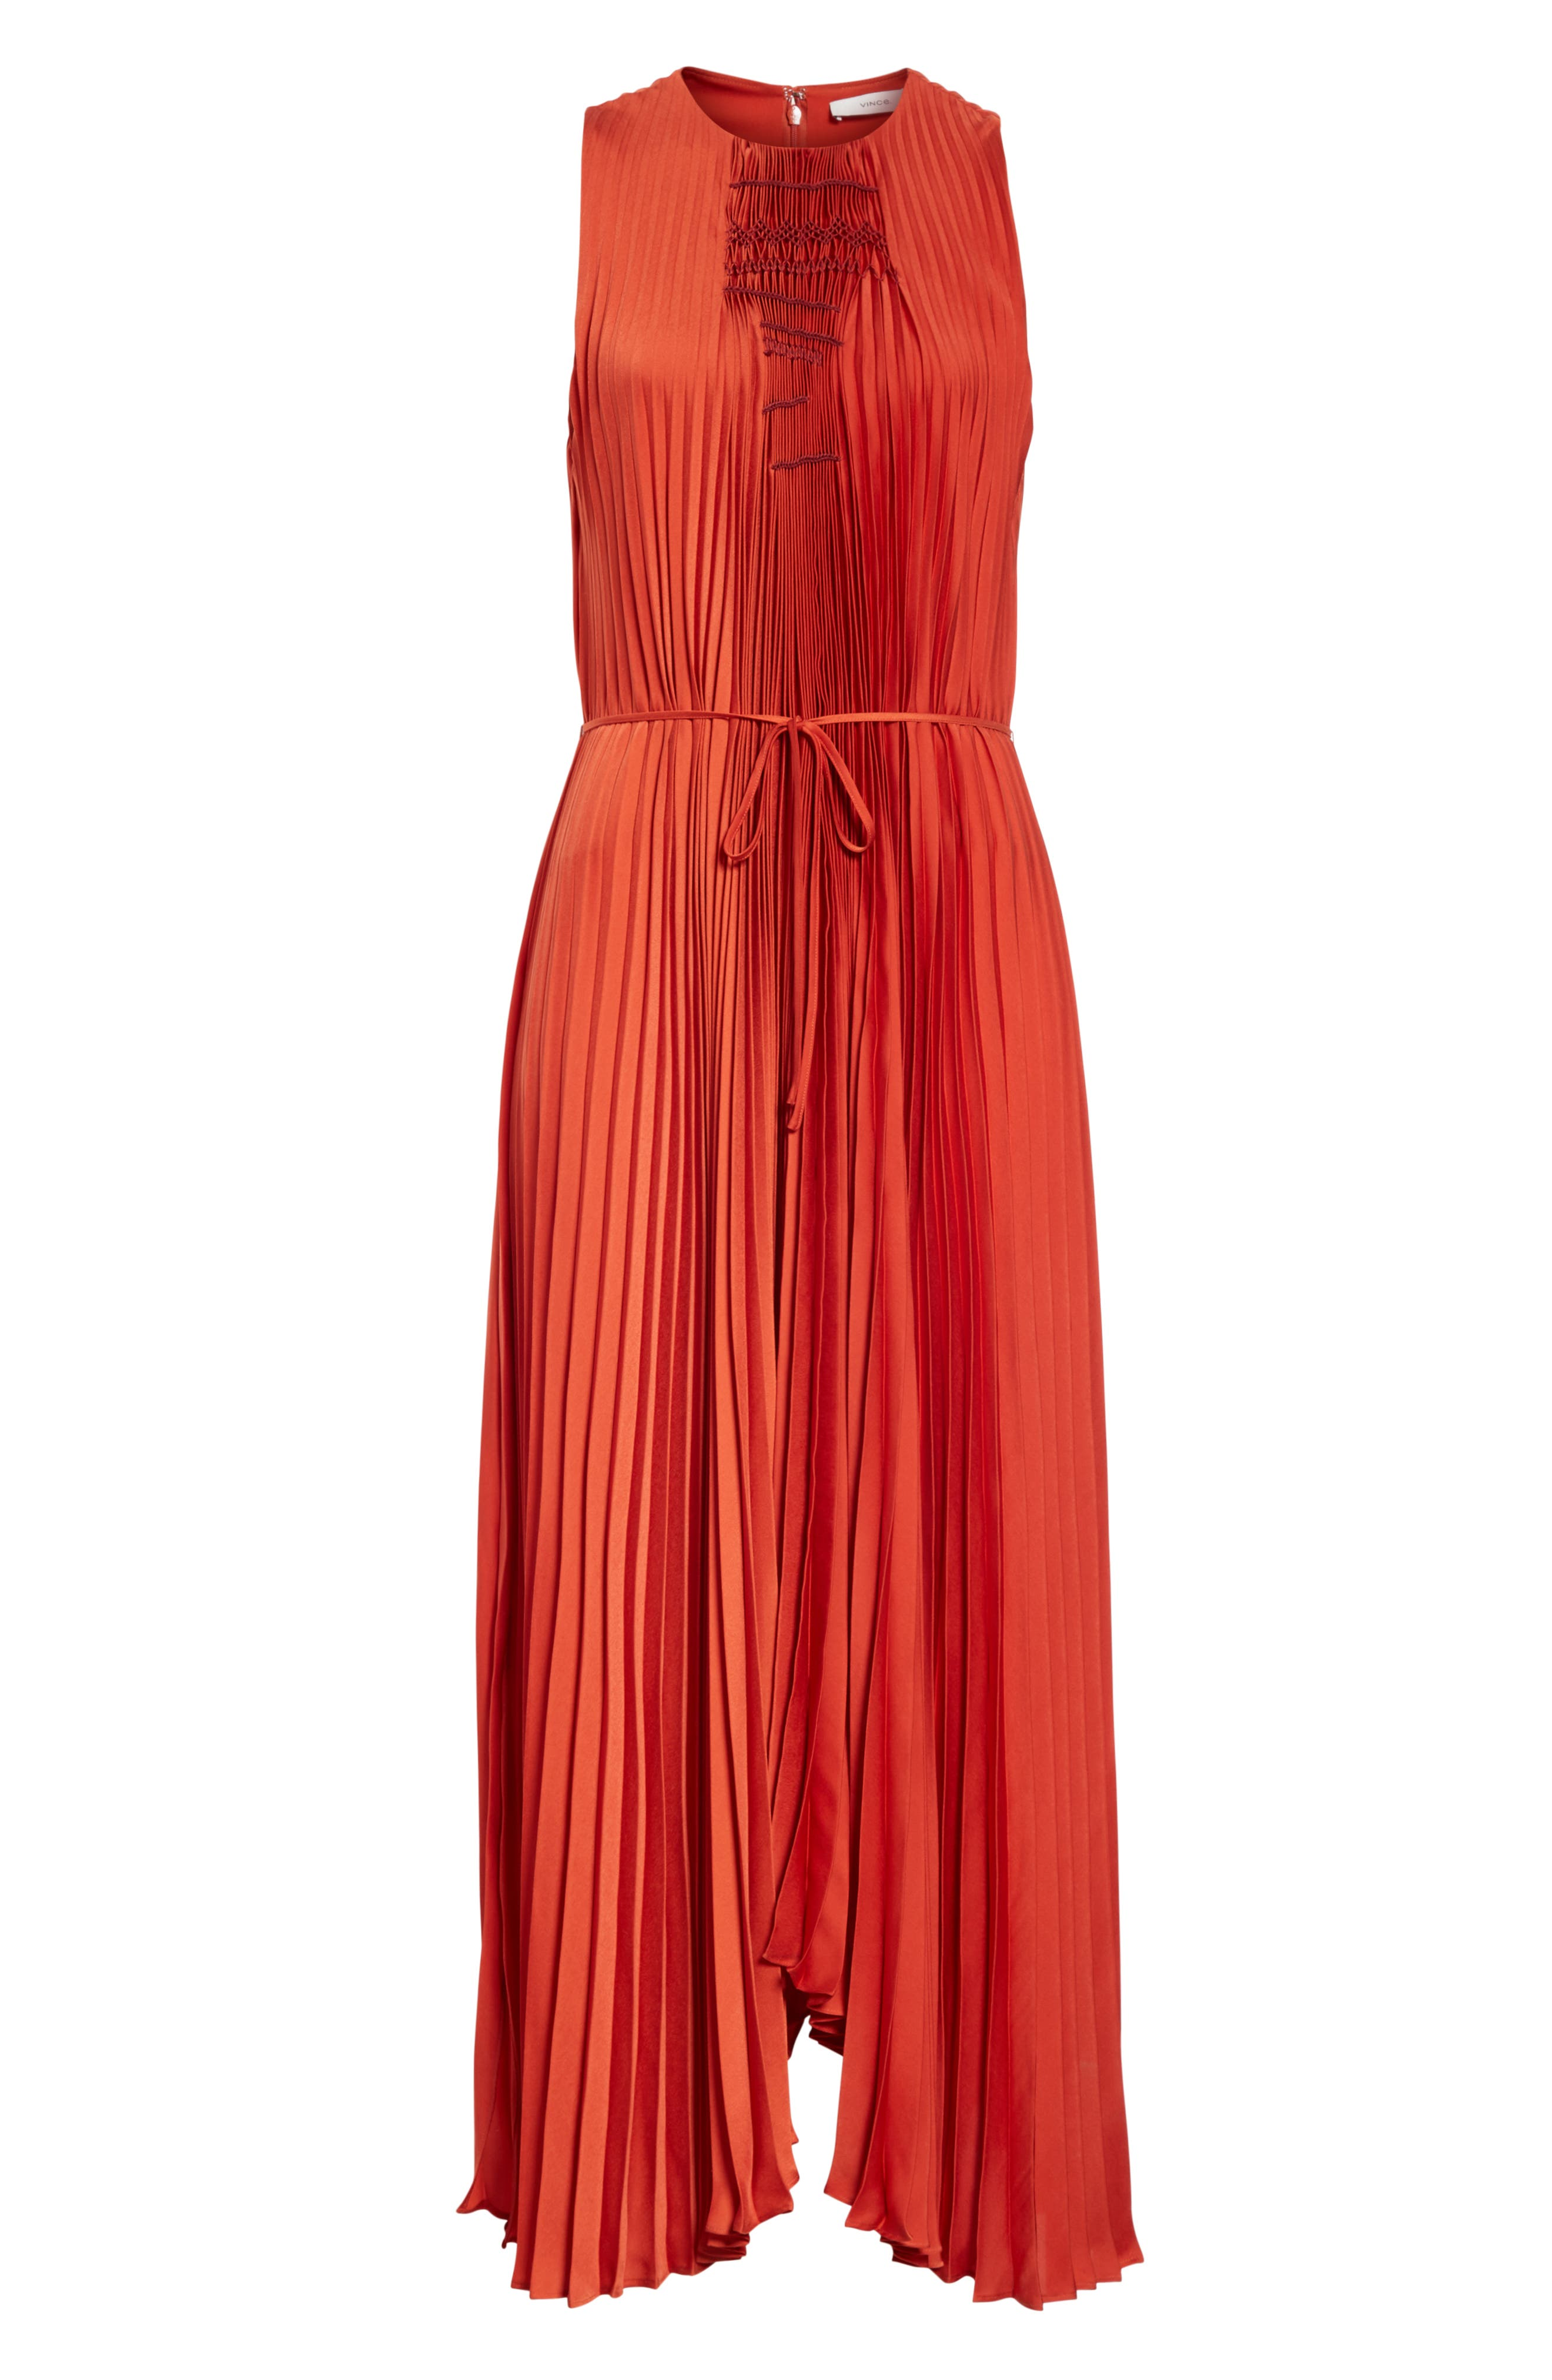 VINCE, Smocked Maxi Dress, Alternate thumbnail 7, color, ADOBE RED